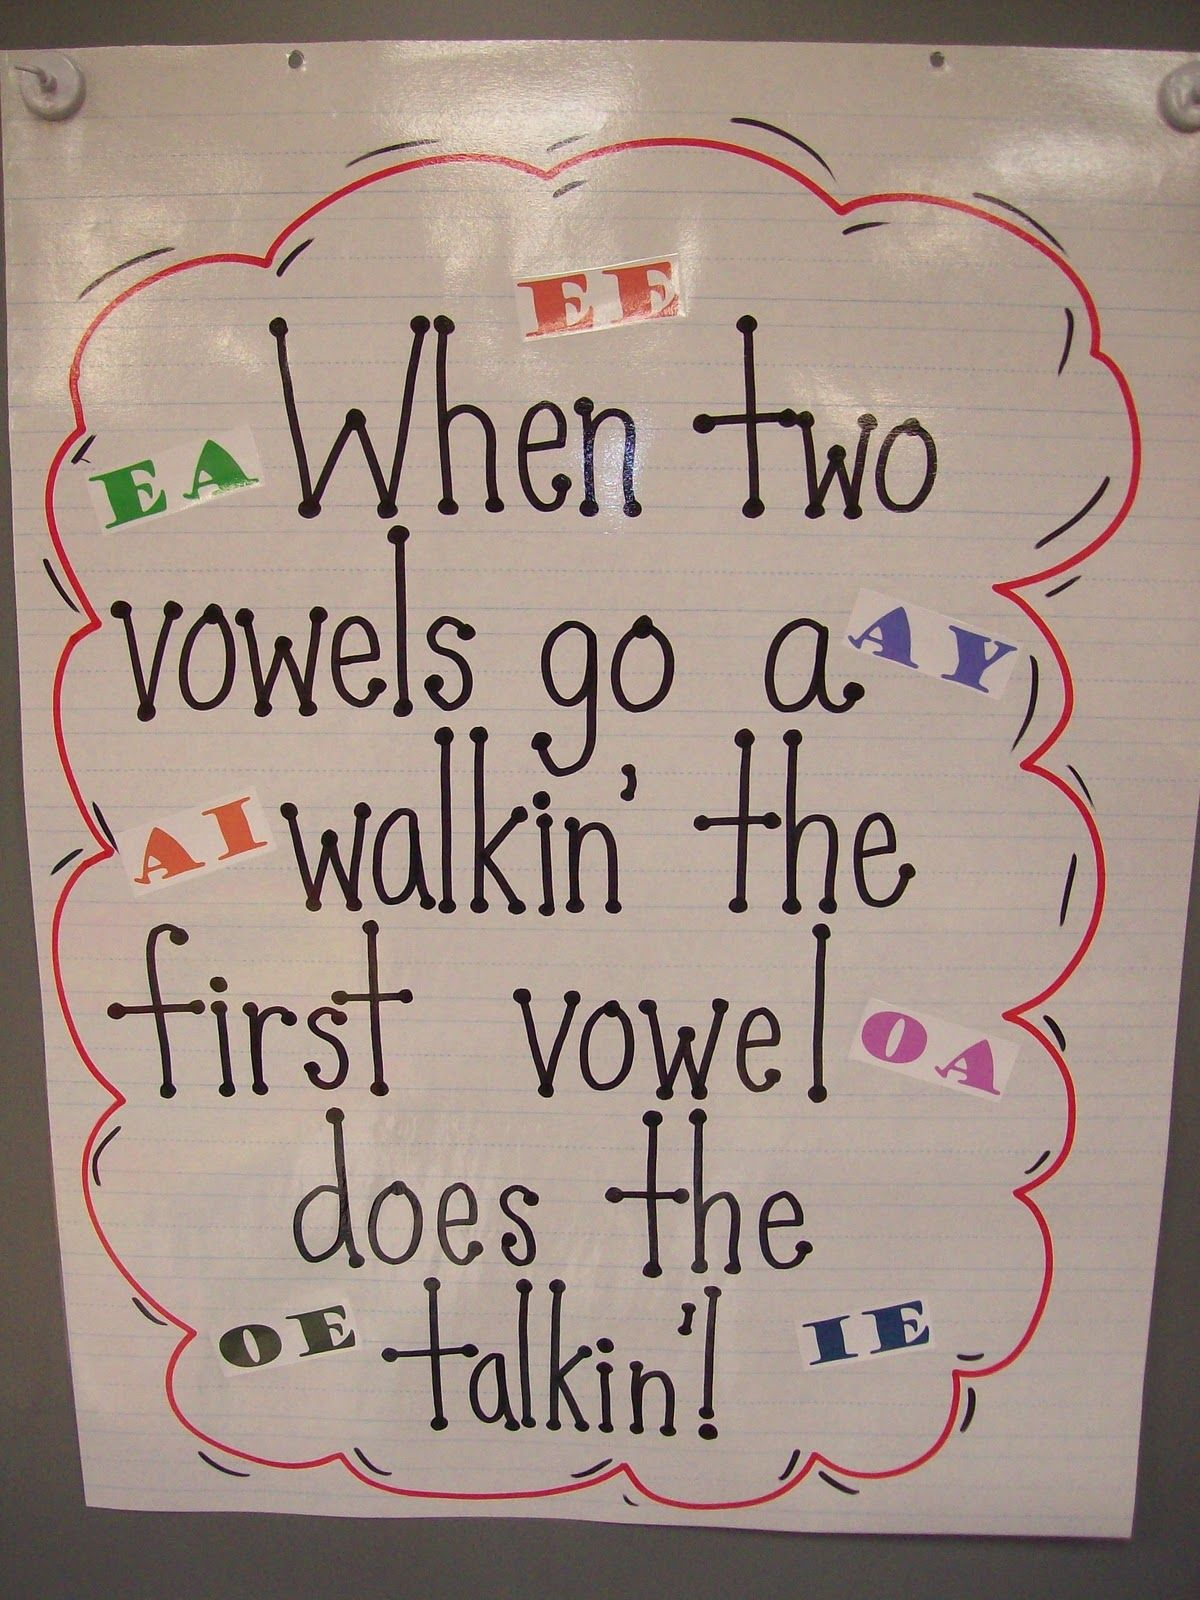 When Two Vowels Go Walking E First One Does The